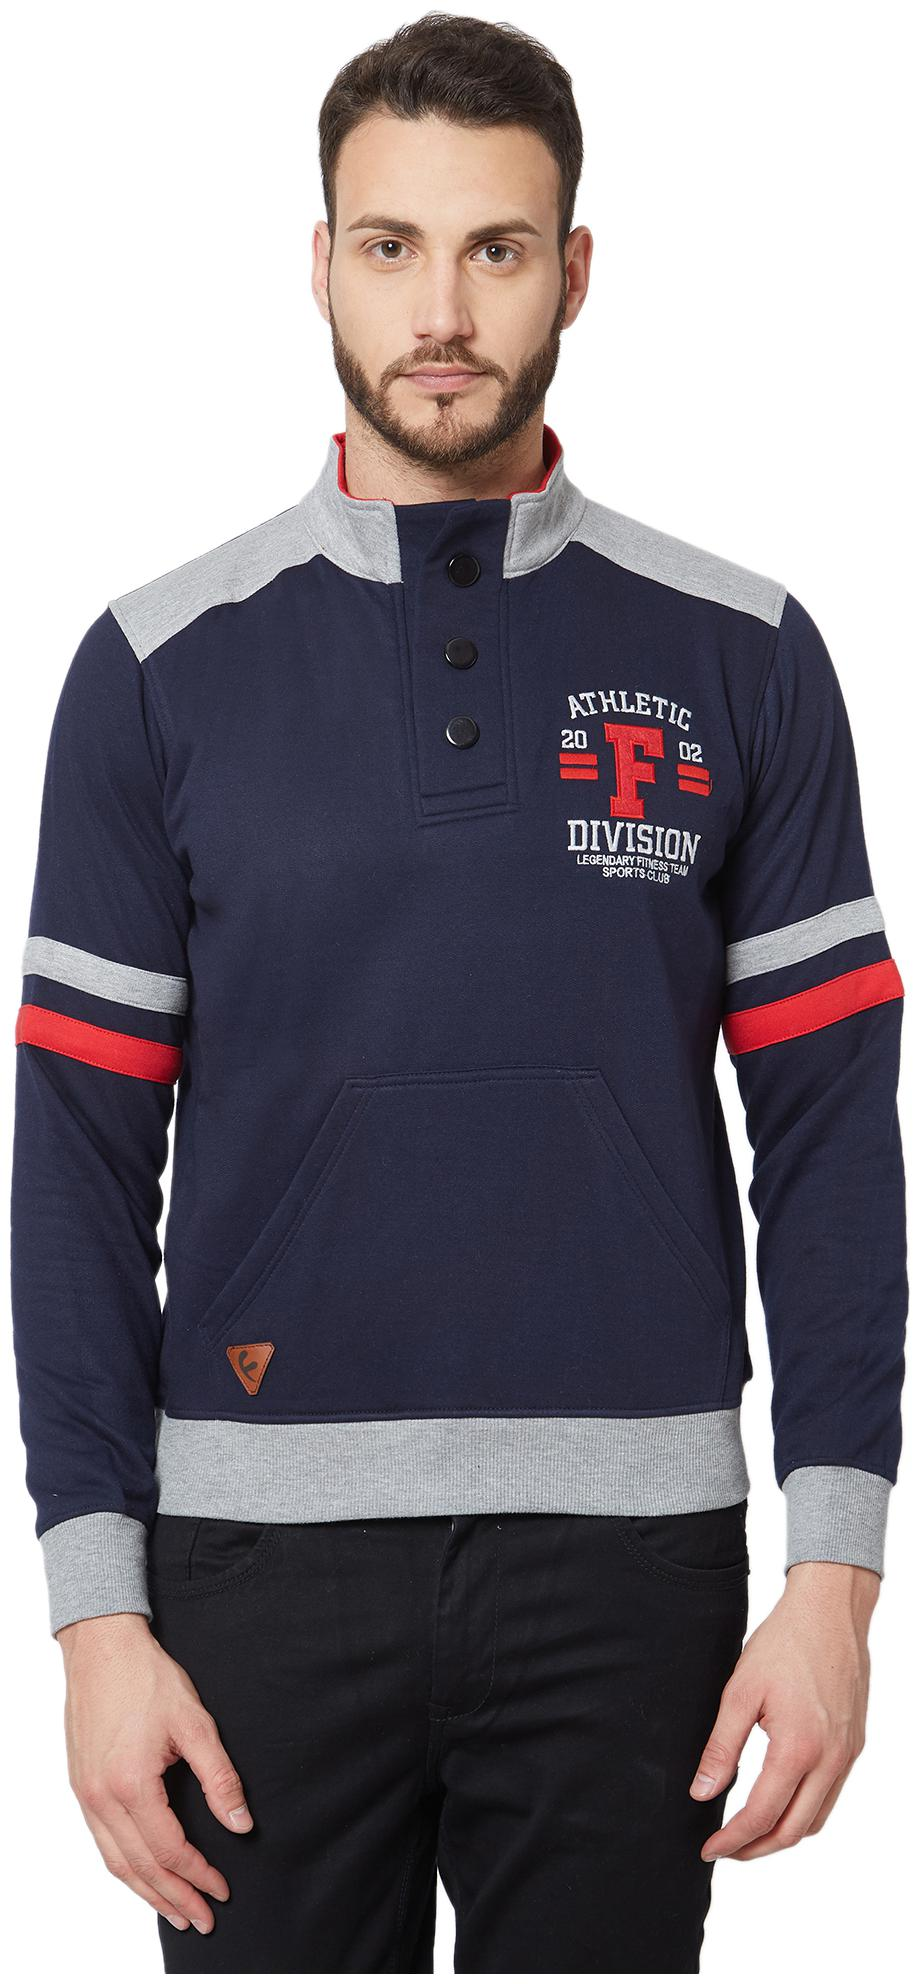 Fitz Poly Cotton Sweatshirt For Mens